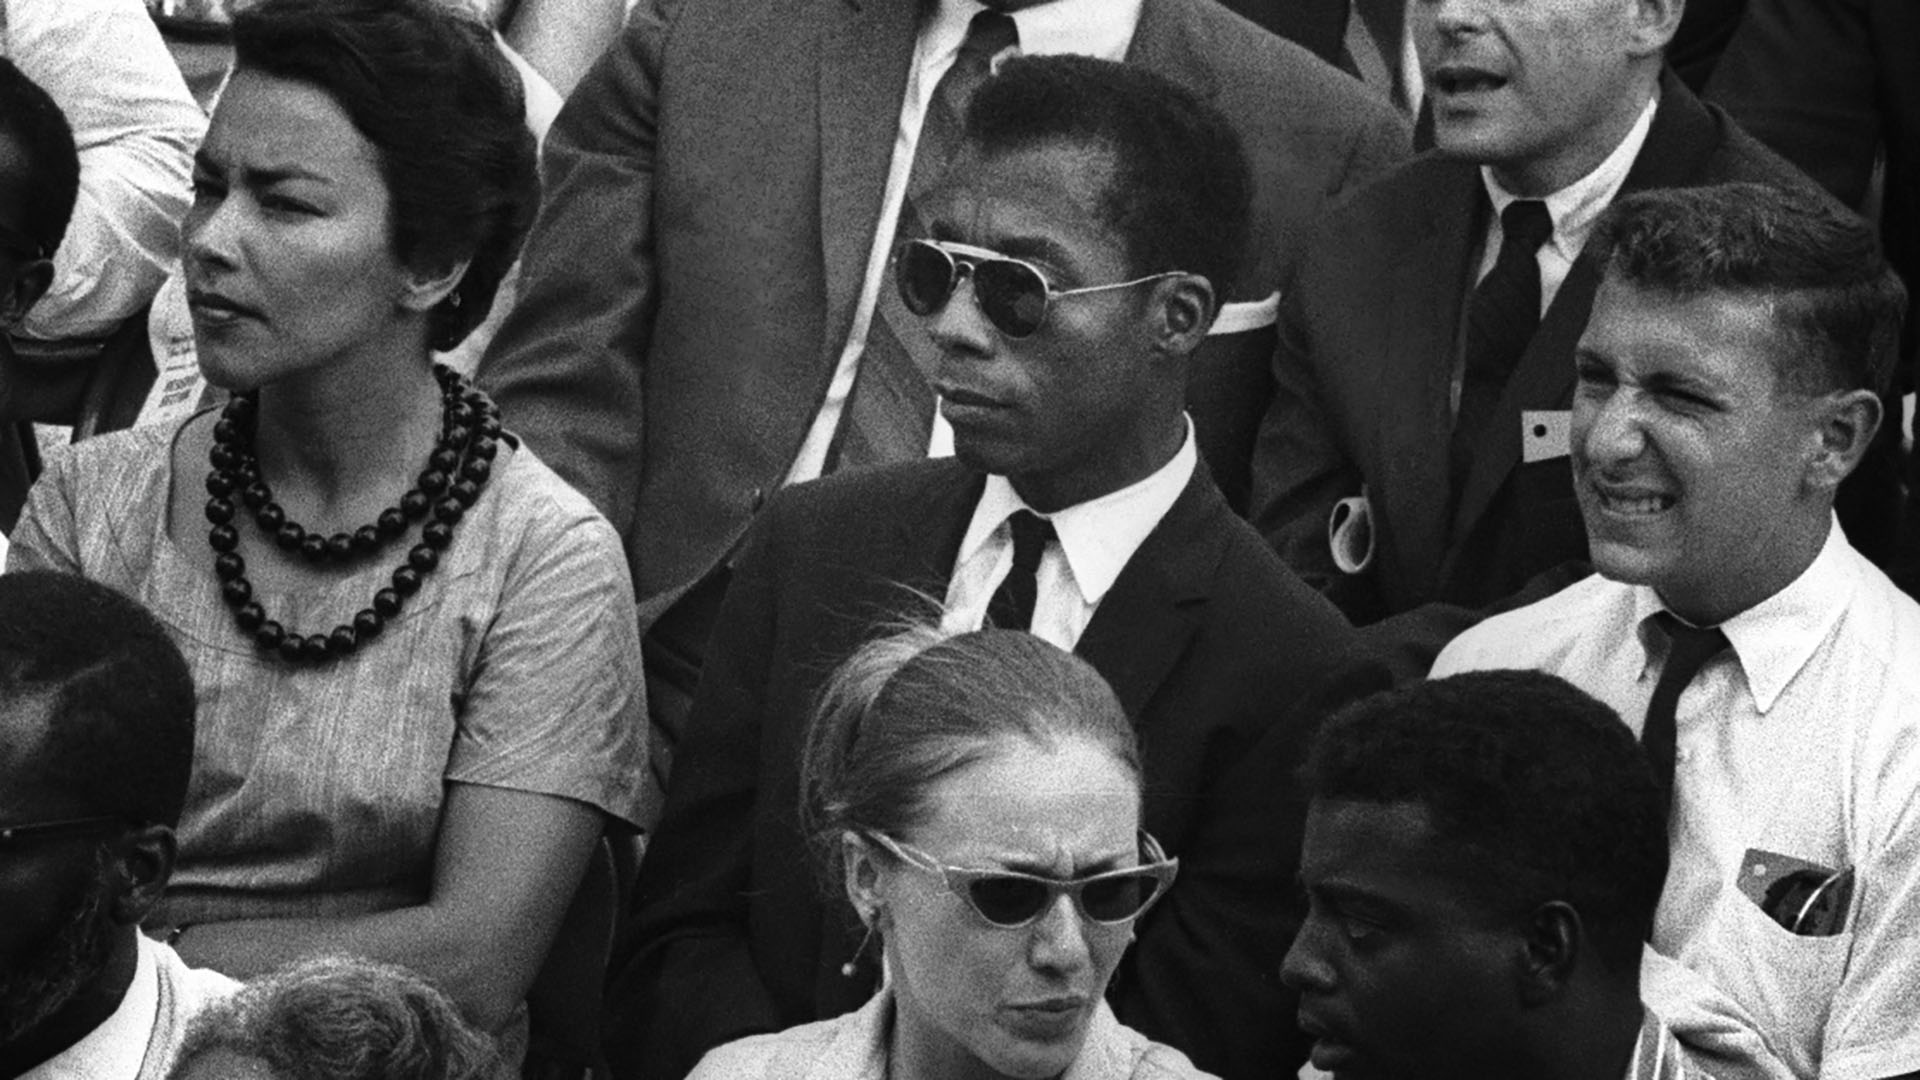 Free pop-up screening set for Oscar-nominated documentary 'I Am Not Your Negro'